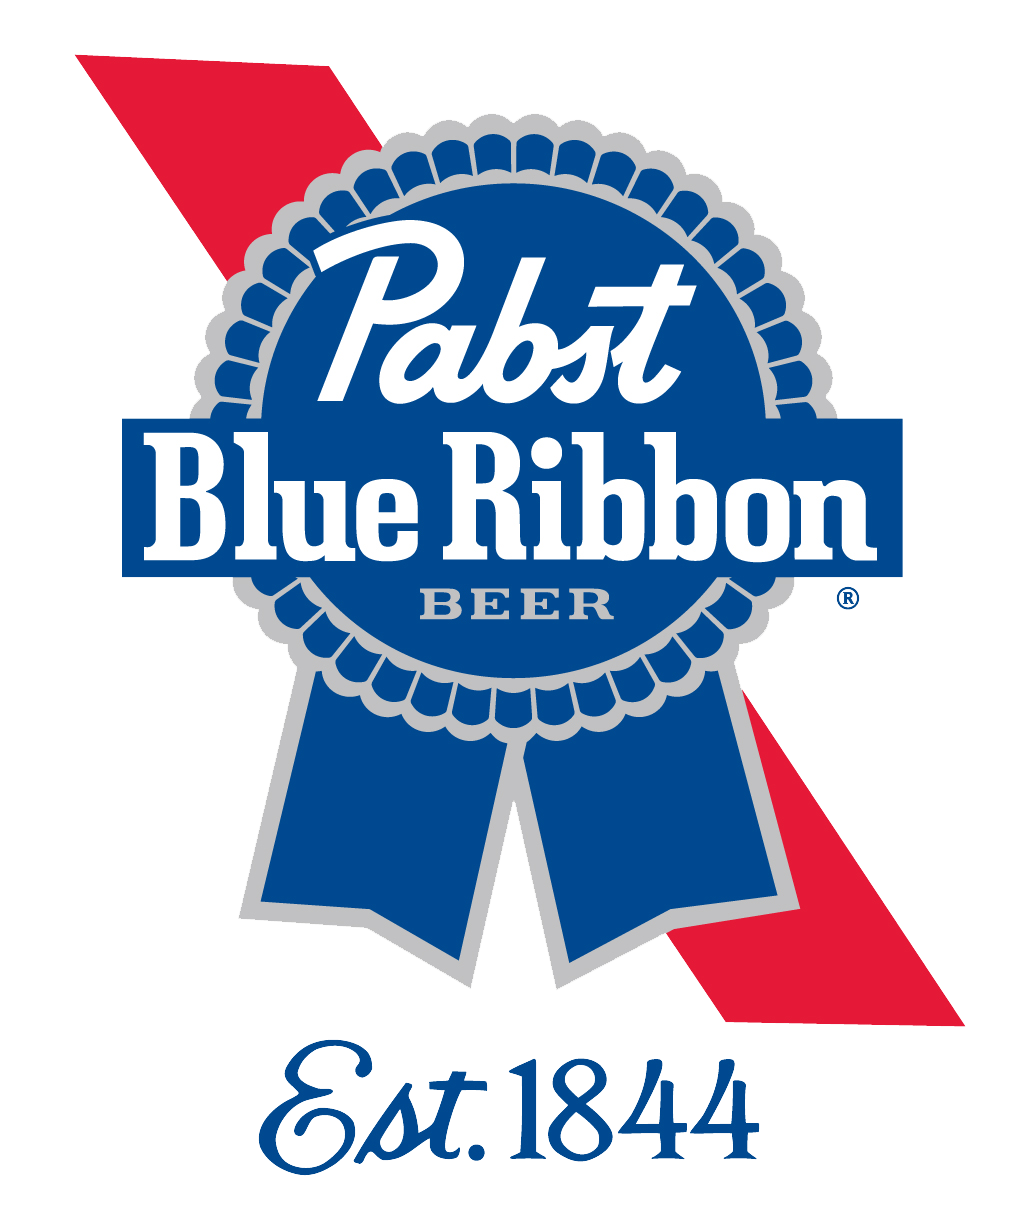 pabst-blue-ribbon.png